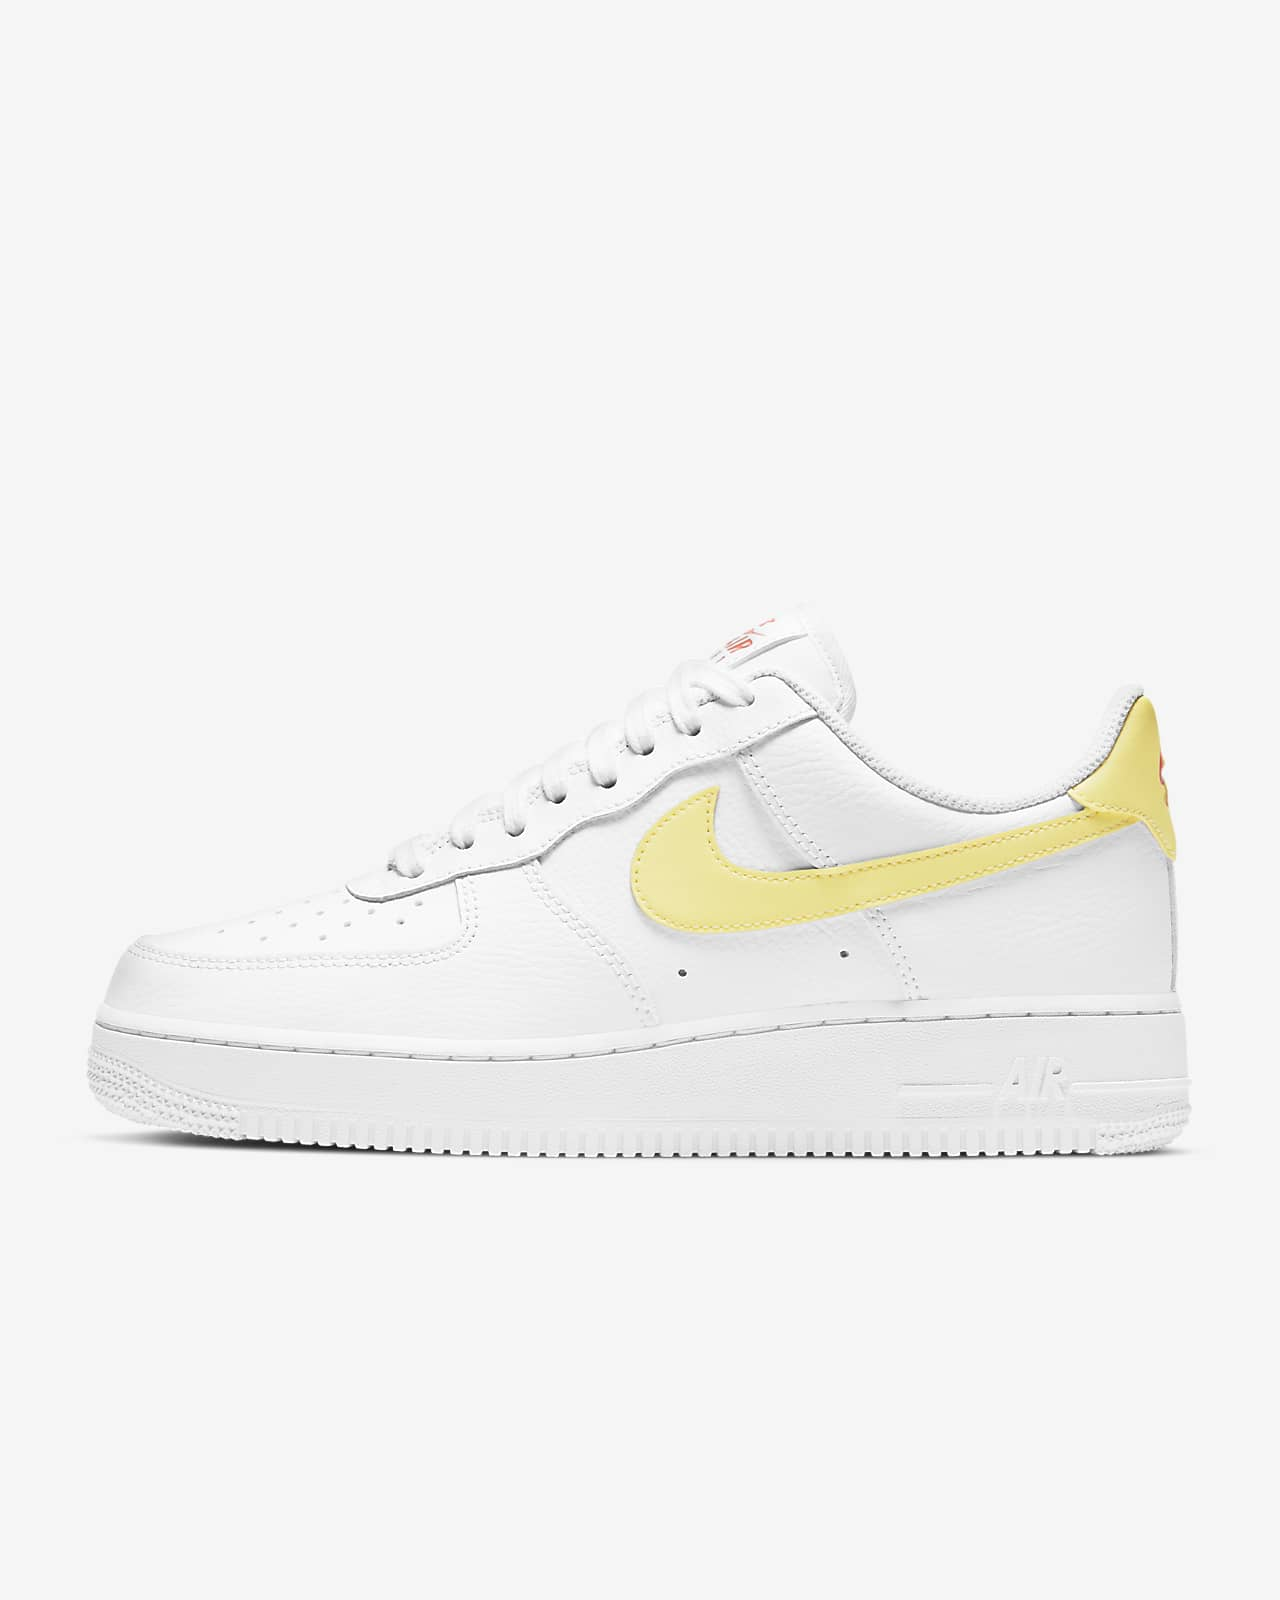 nike air force 1 femme fluo> OFF-67%